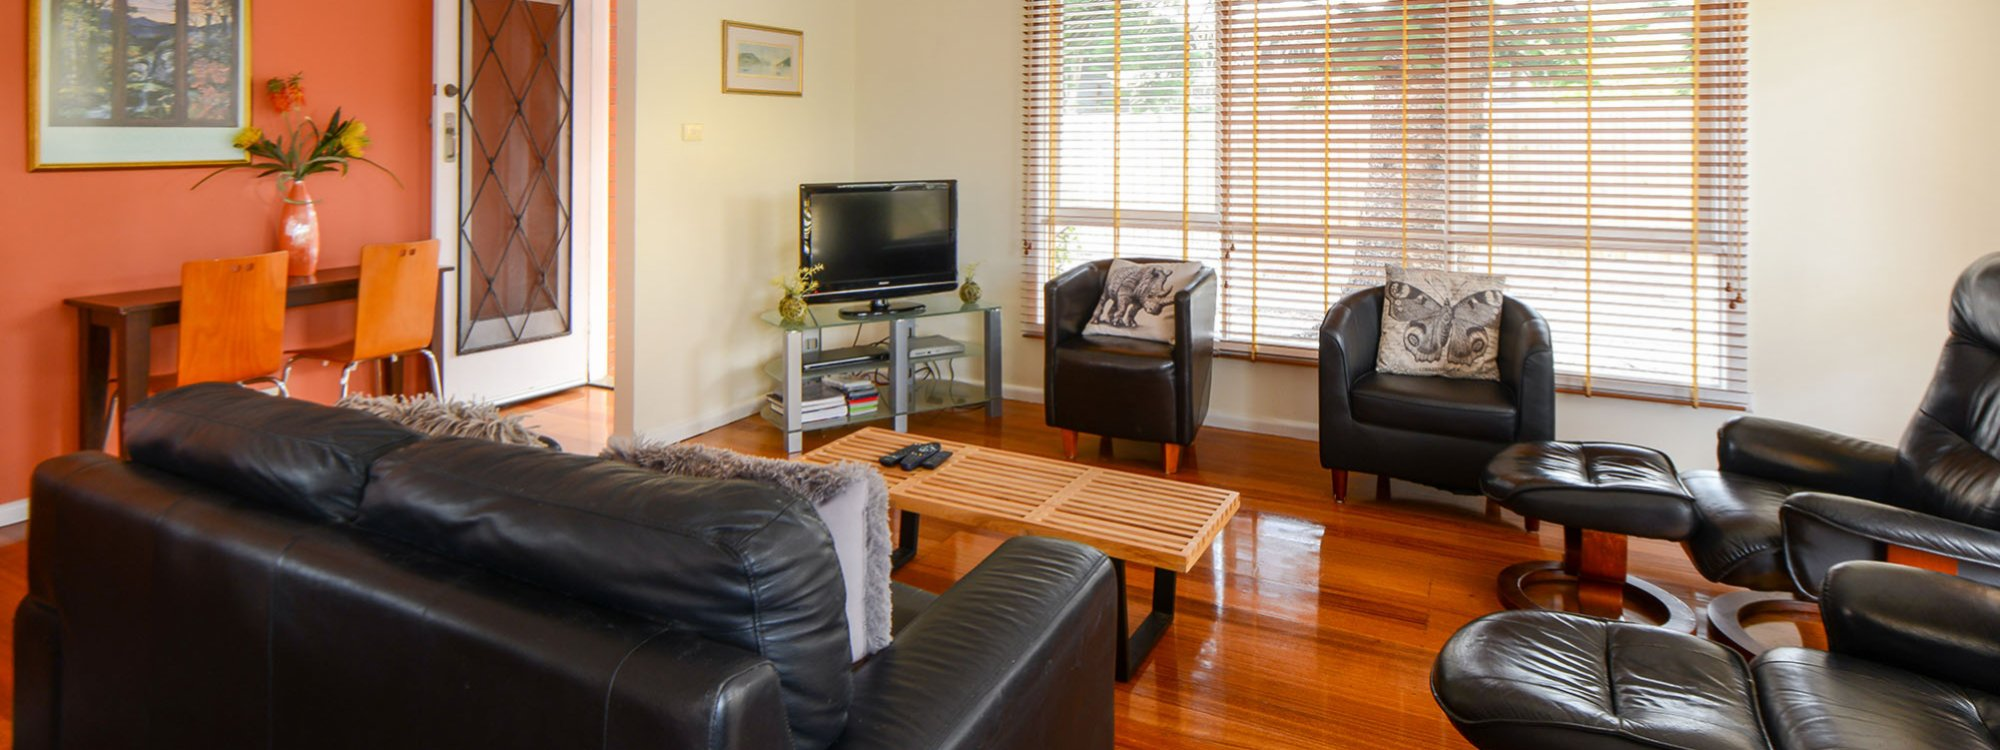 Sandy Haven A - Sandringham - Living Area b